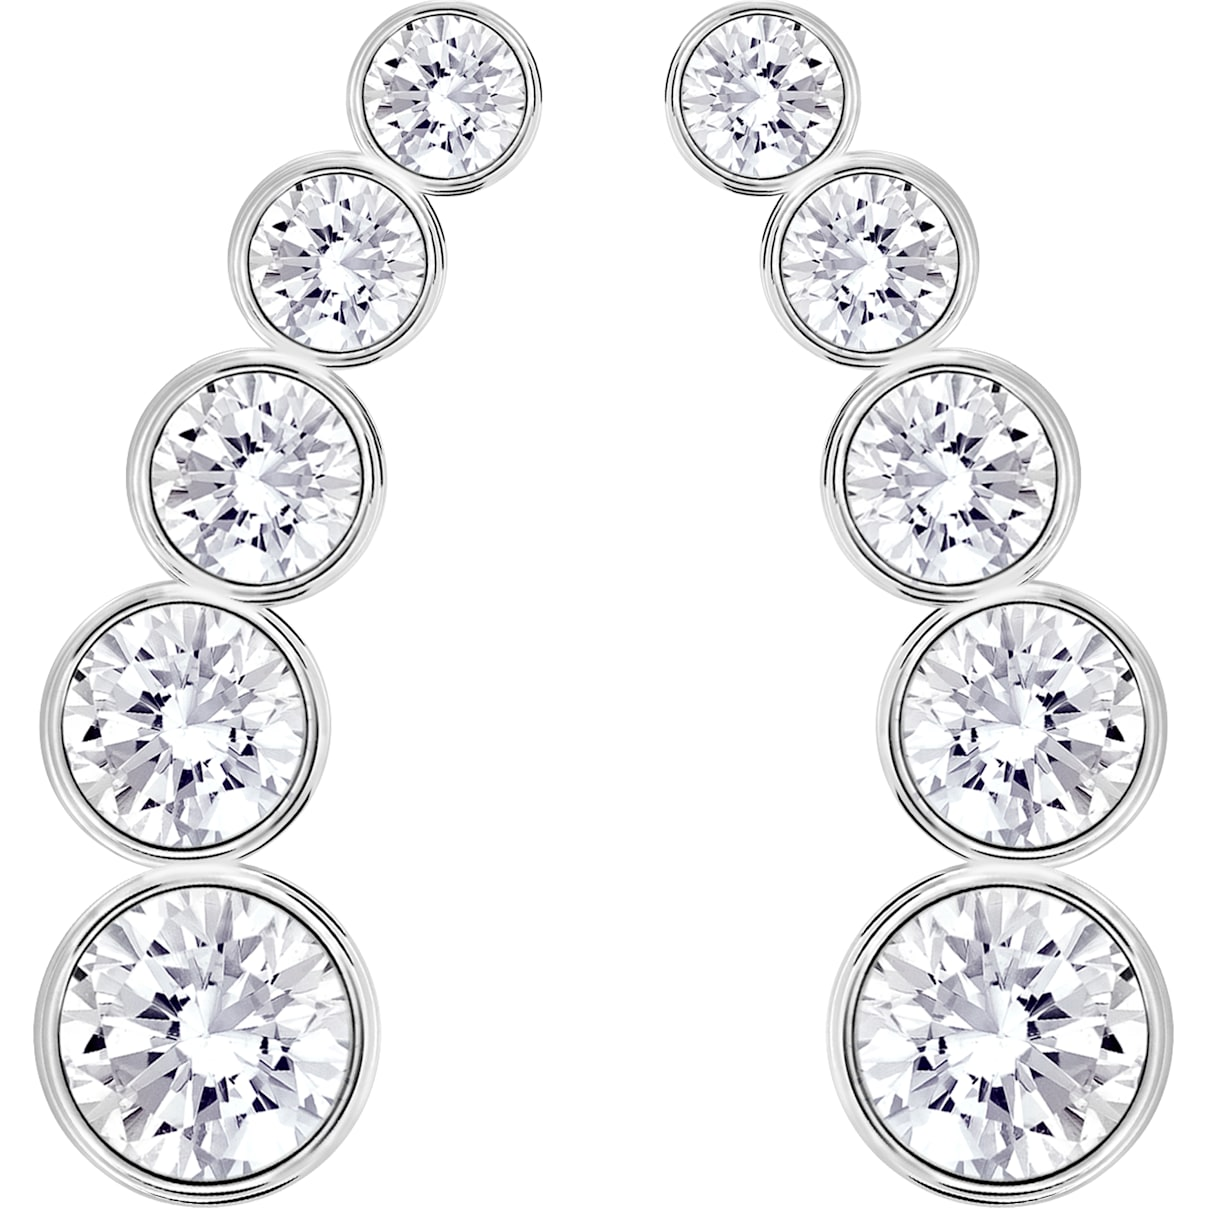 Swarovski Harley Pierced Earrings, White, Rhodium plated